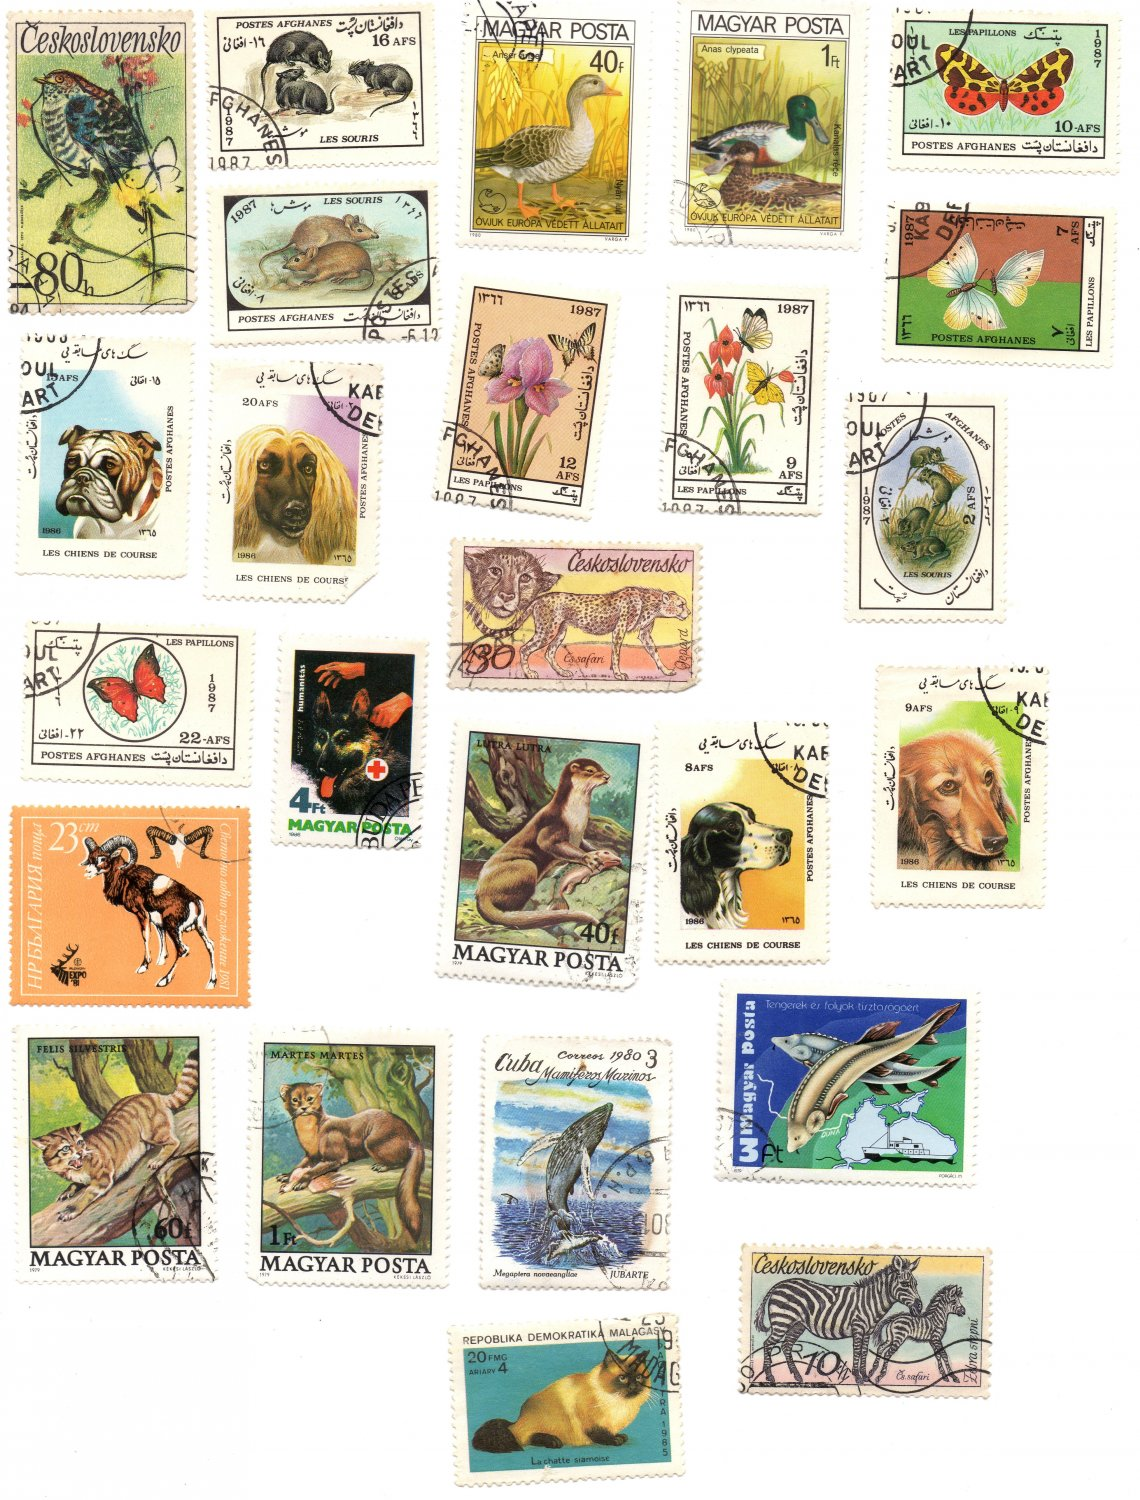 Postage stamps from USSR and the countries of the socialist camp